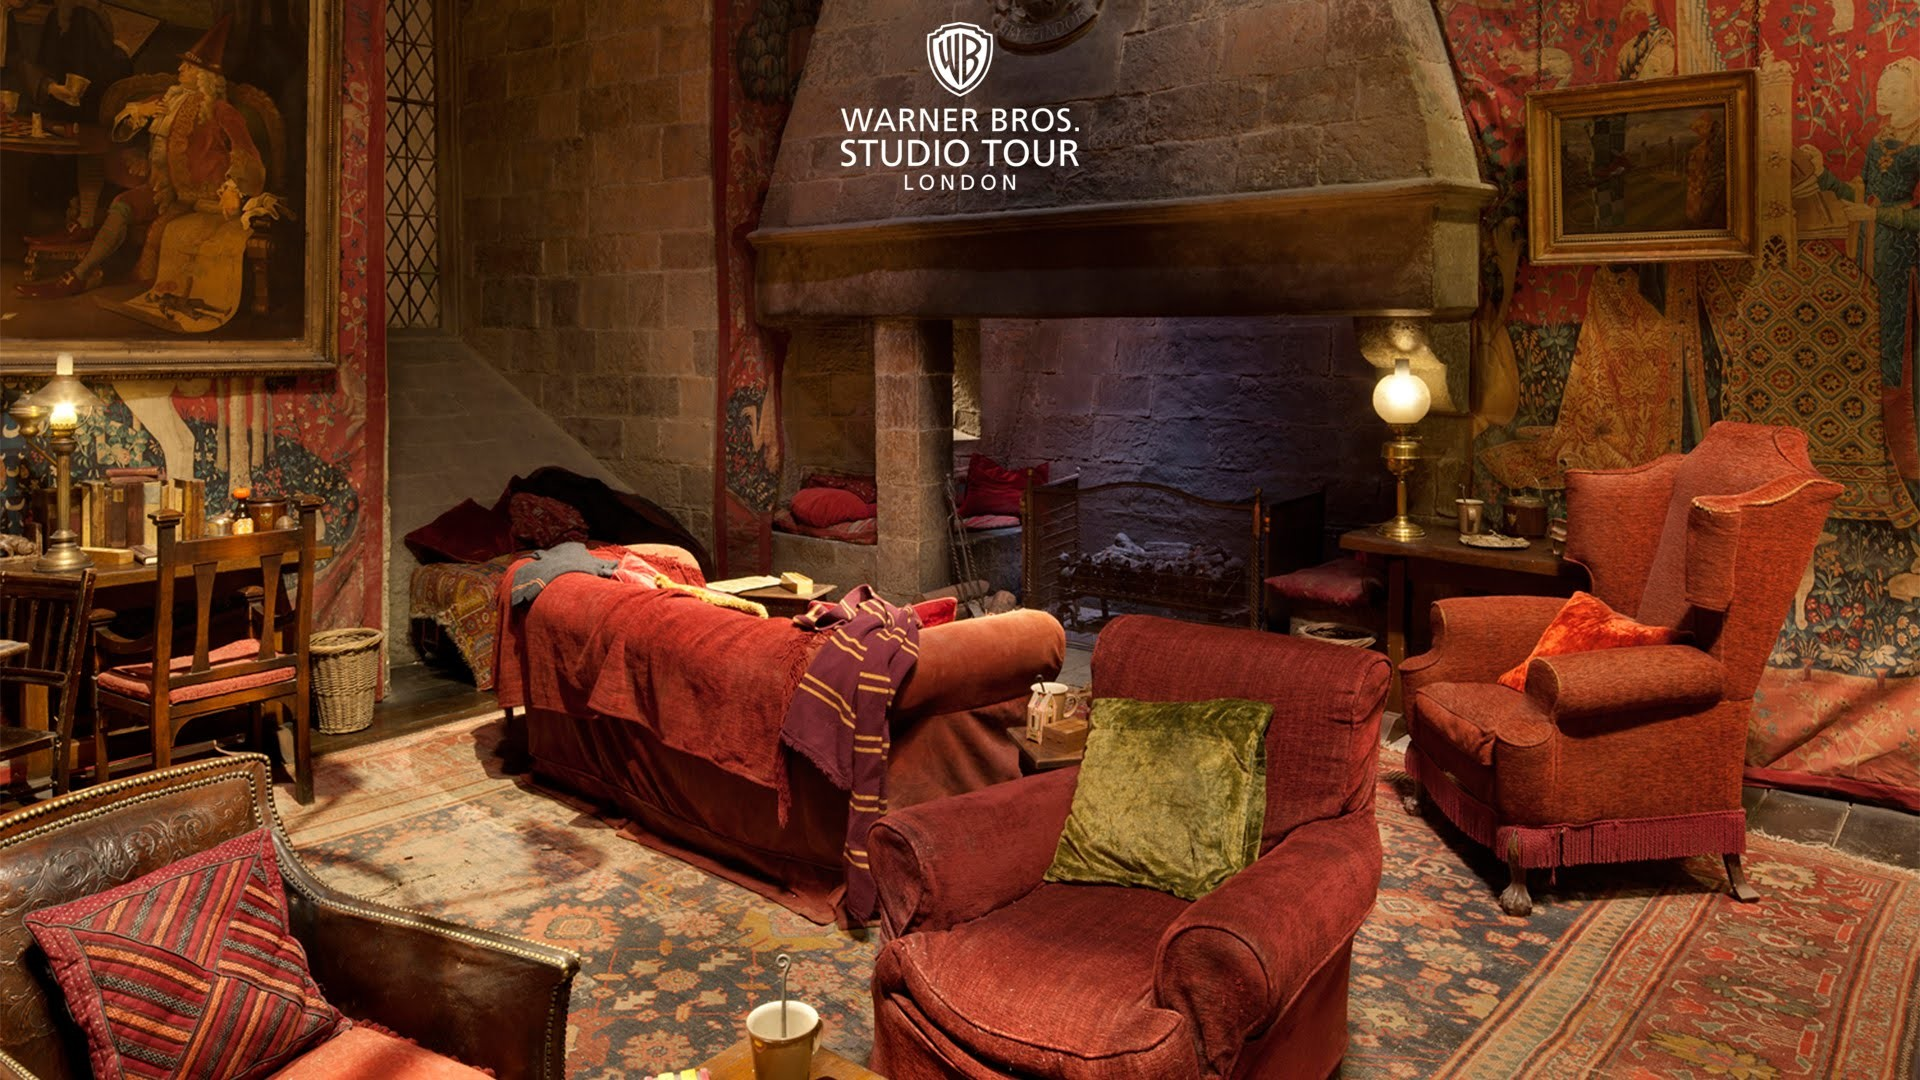 Res: 1920x1080, The Gryffindor Common Room Set In 360 Degrees Warner Bros Studio